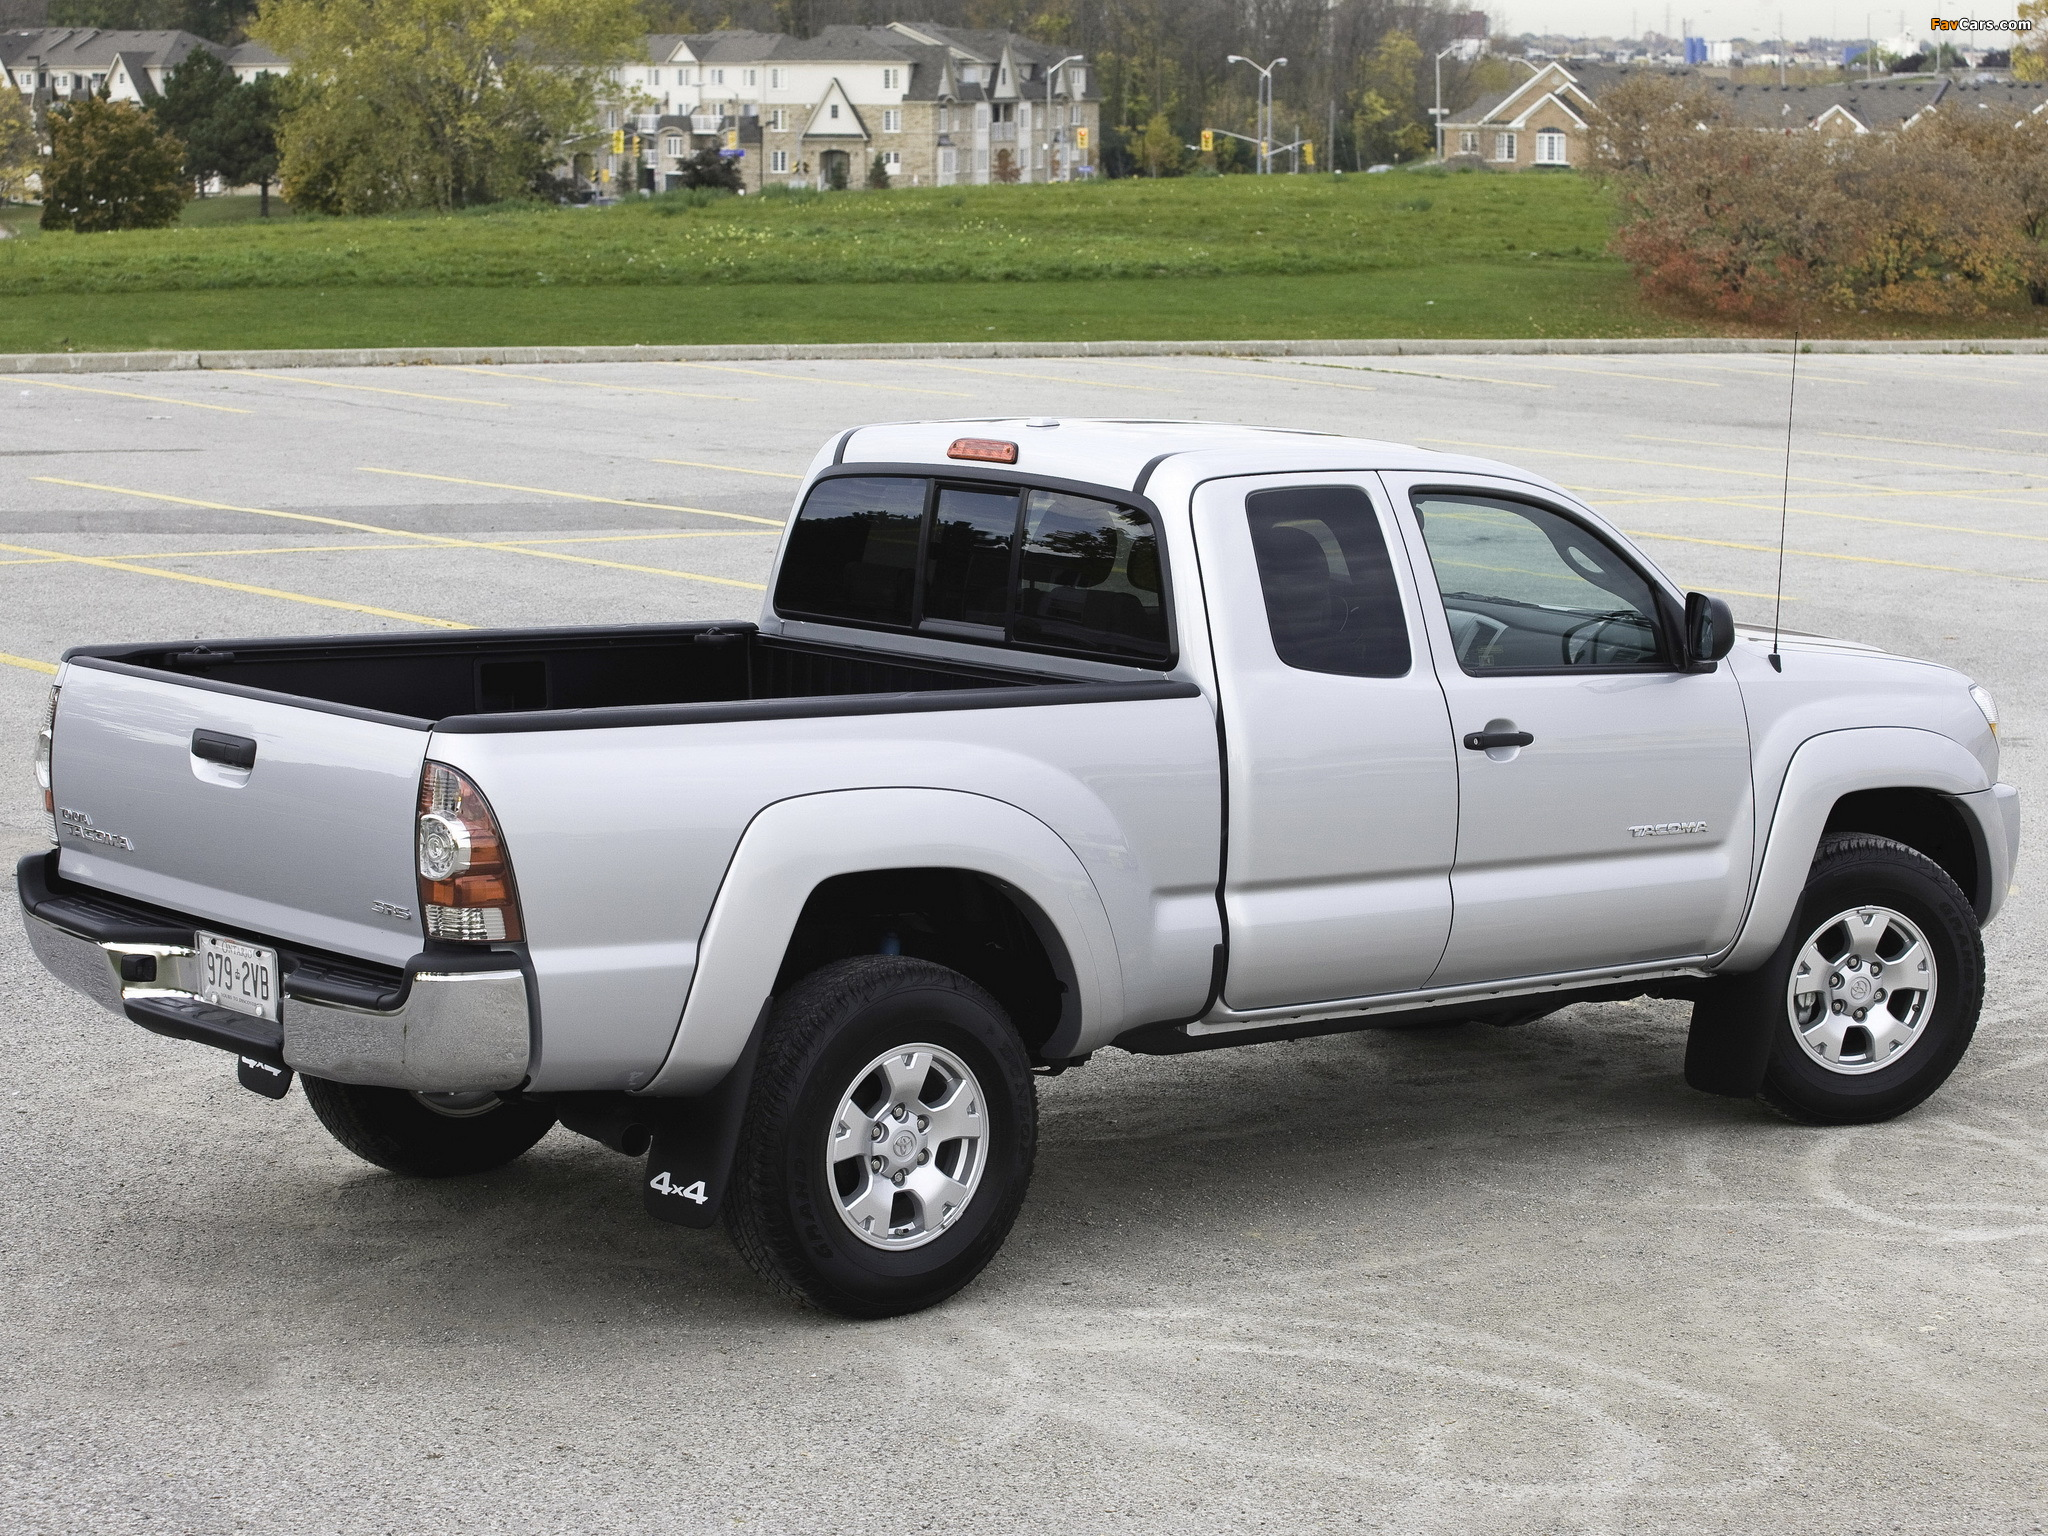 toyota tacoma sr5 access cab 2005 12 photos 2048x1536. Black Bedroom Furniture Sets. Home Design Ideas